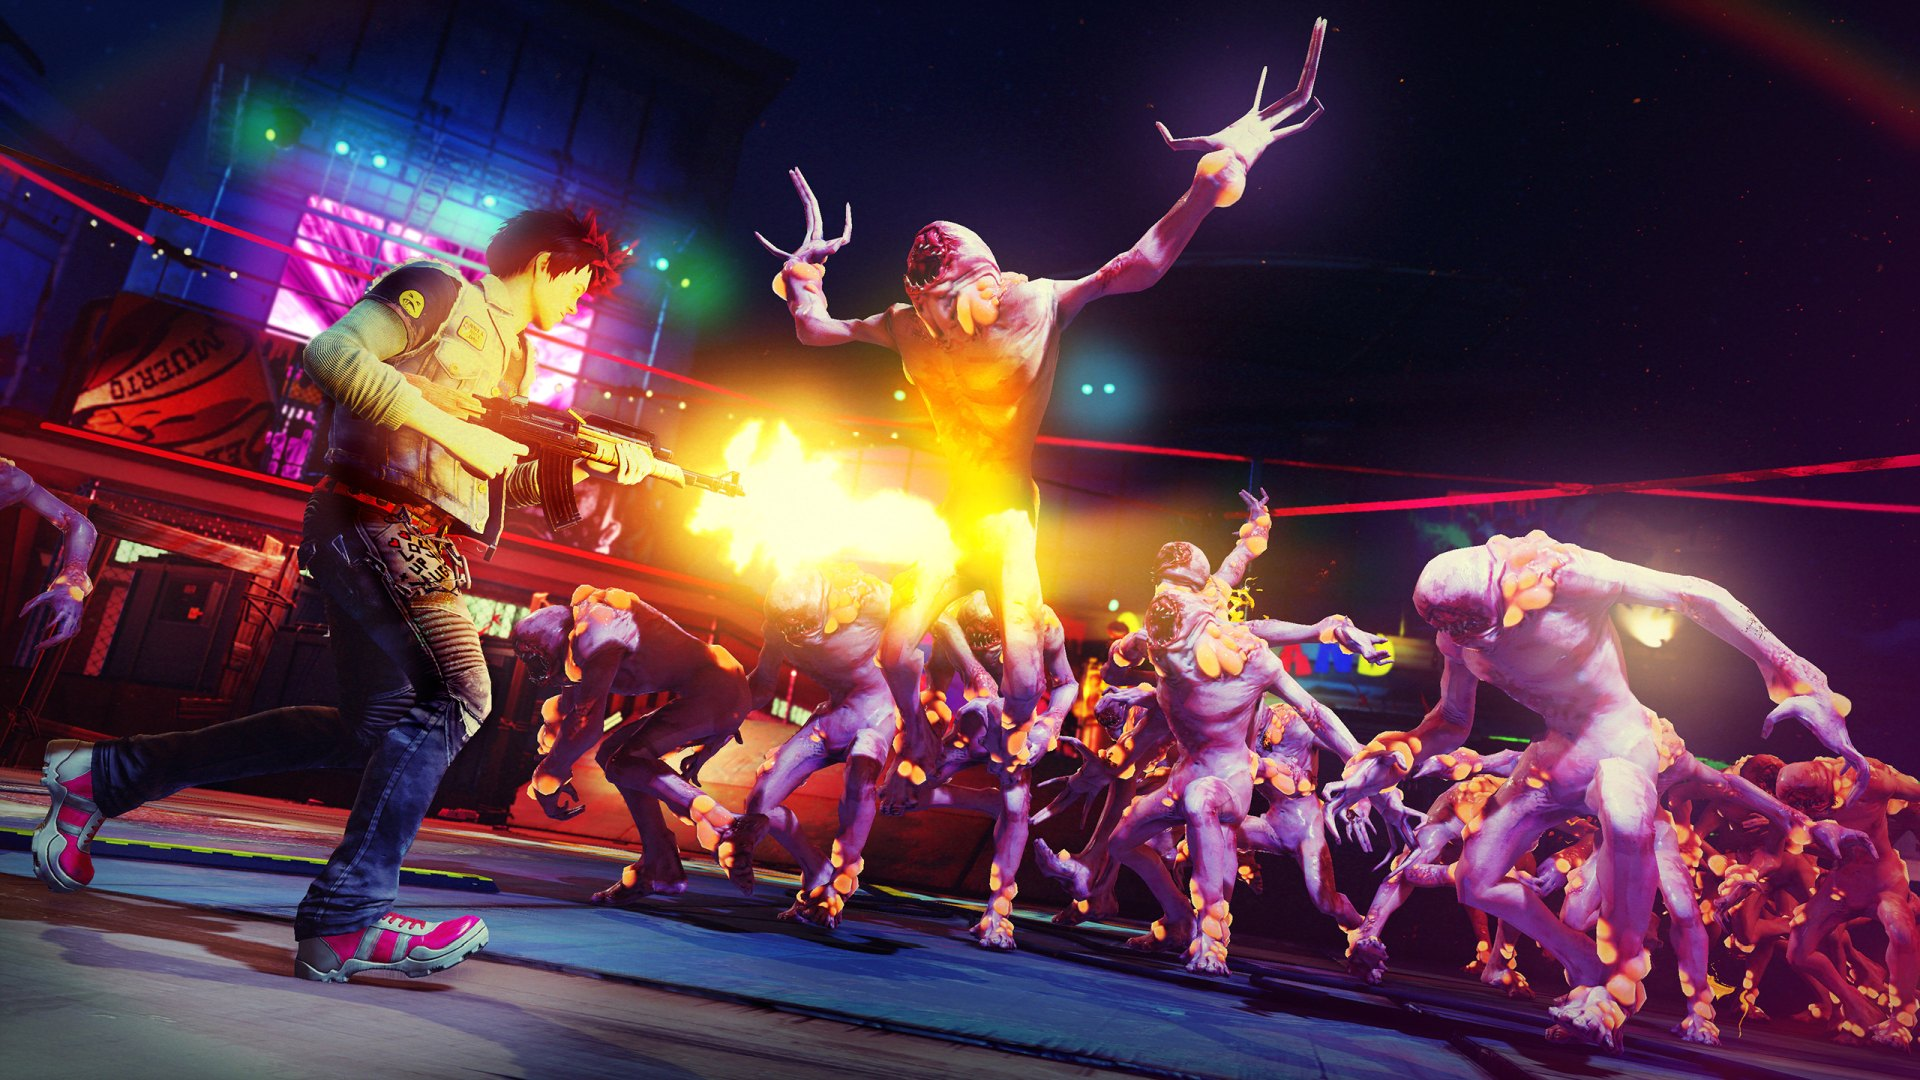 Sunset-Overdrive-Gets-Impressive-Gameplay-Video-Screenshots-441980-6